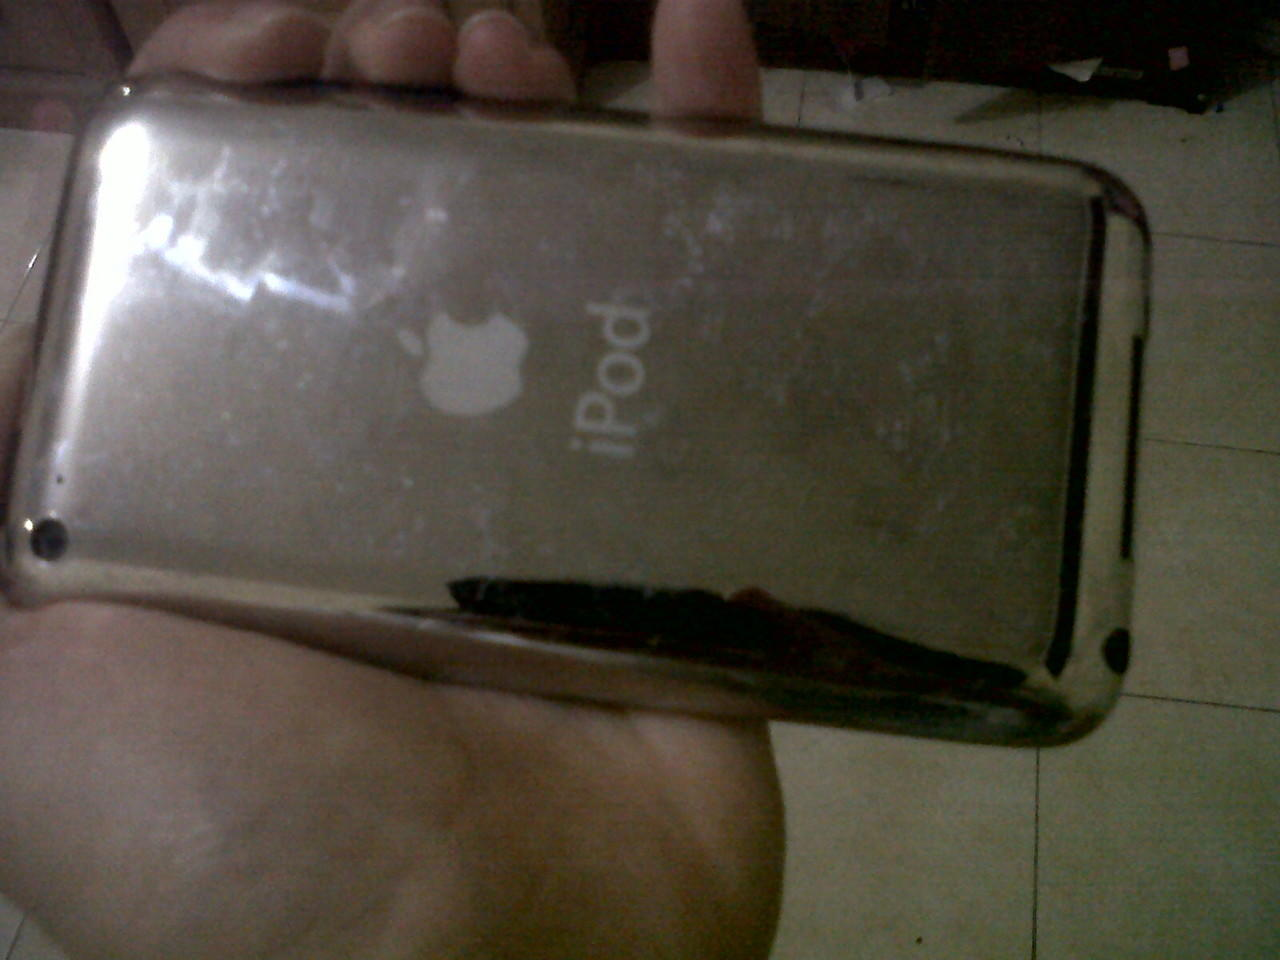 Jual second ipod 4th gen 32 GB muraah gan!